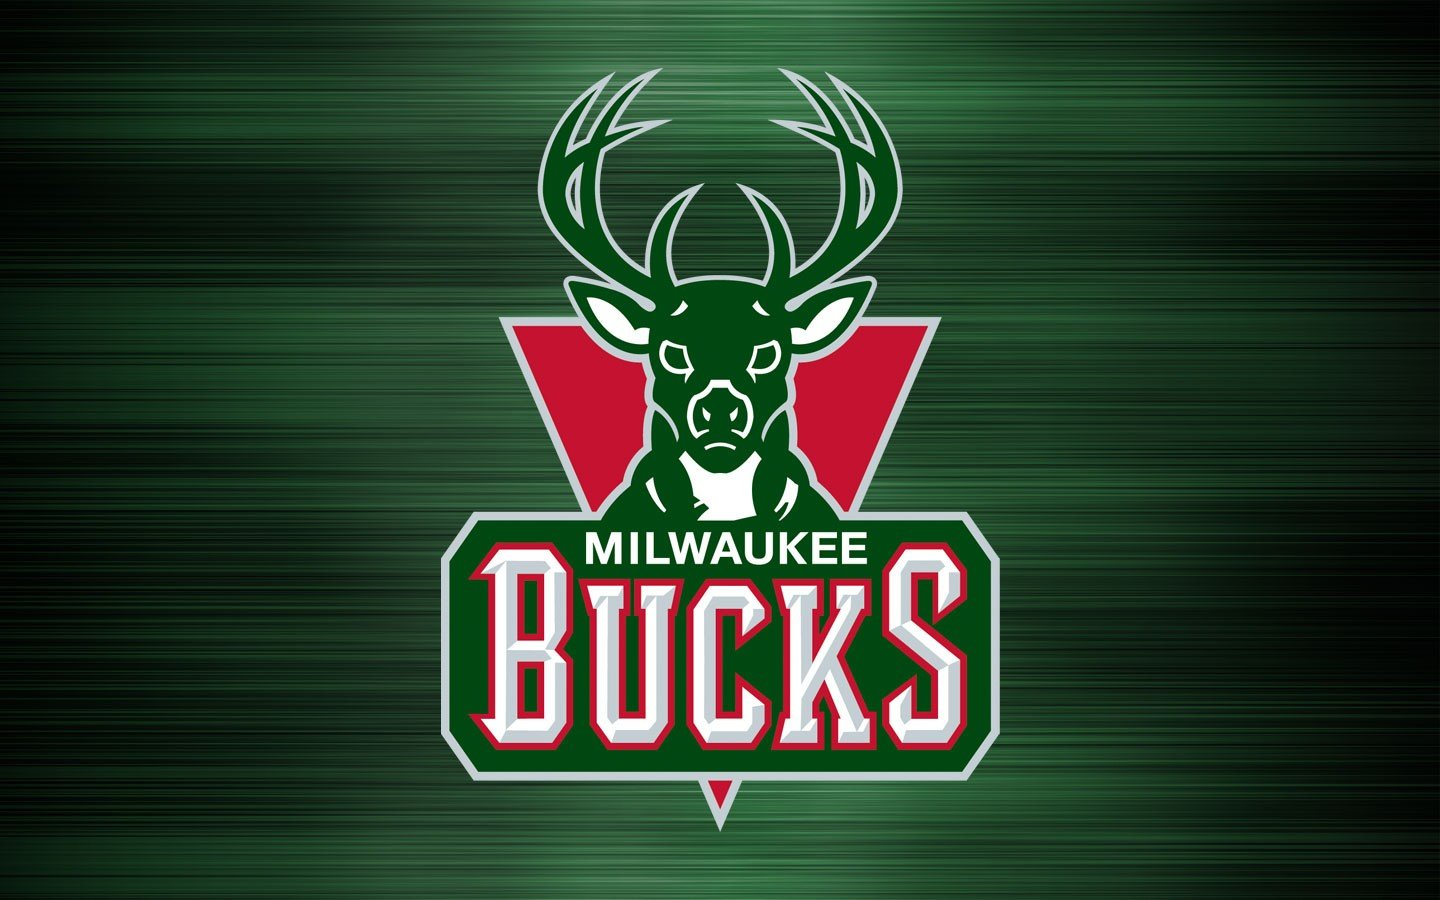 Download hd 1440x900 Milwaukee Bucks PC background ID:373588 for free